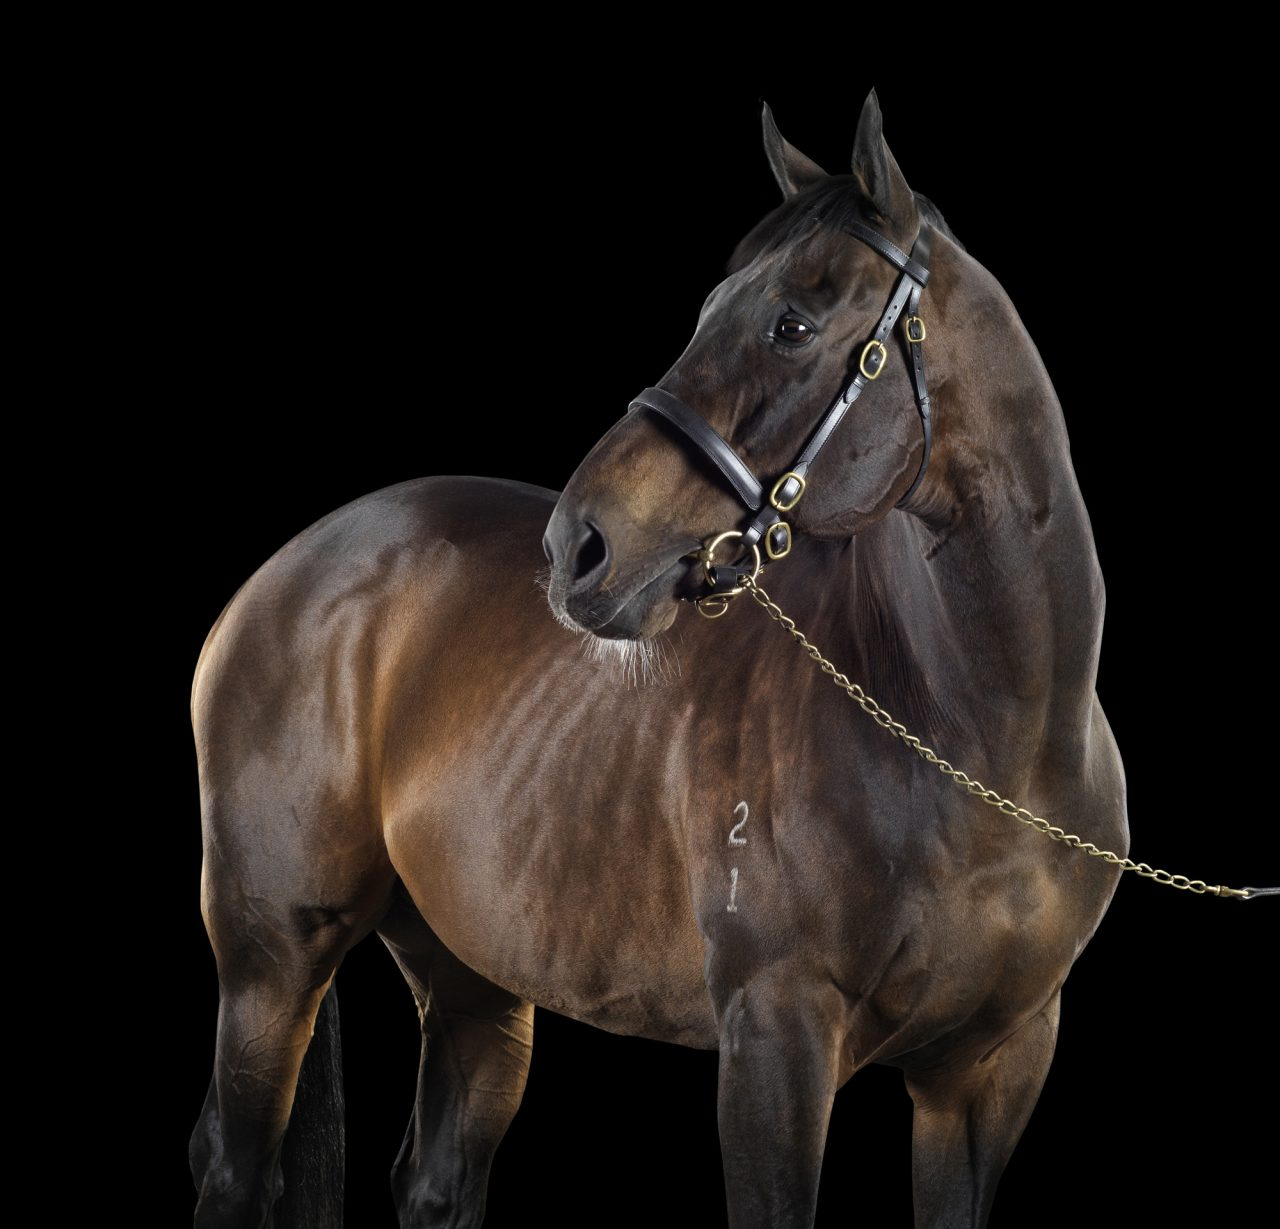 lighr-brown thoroughbred horse in front of a black background